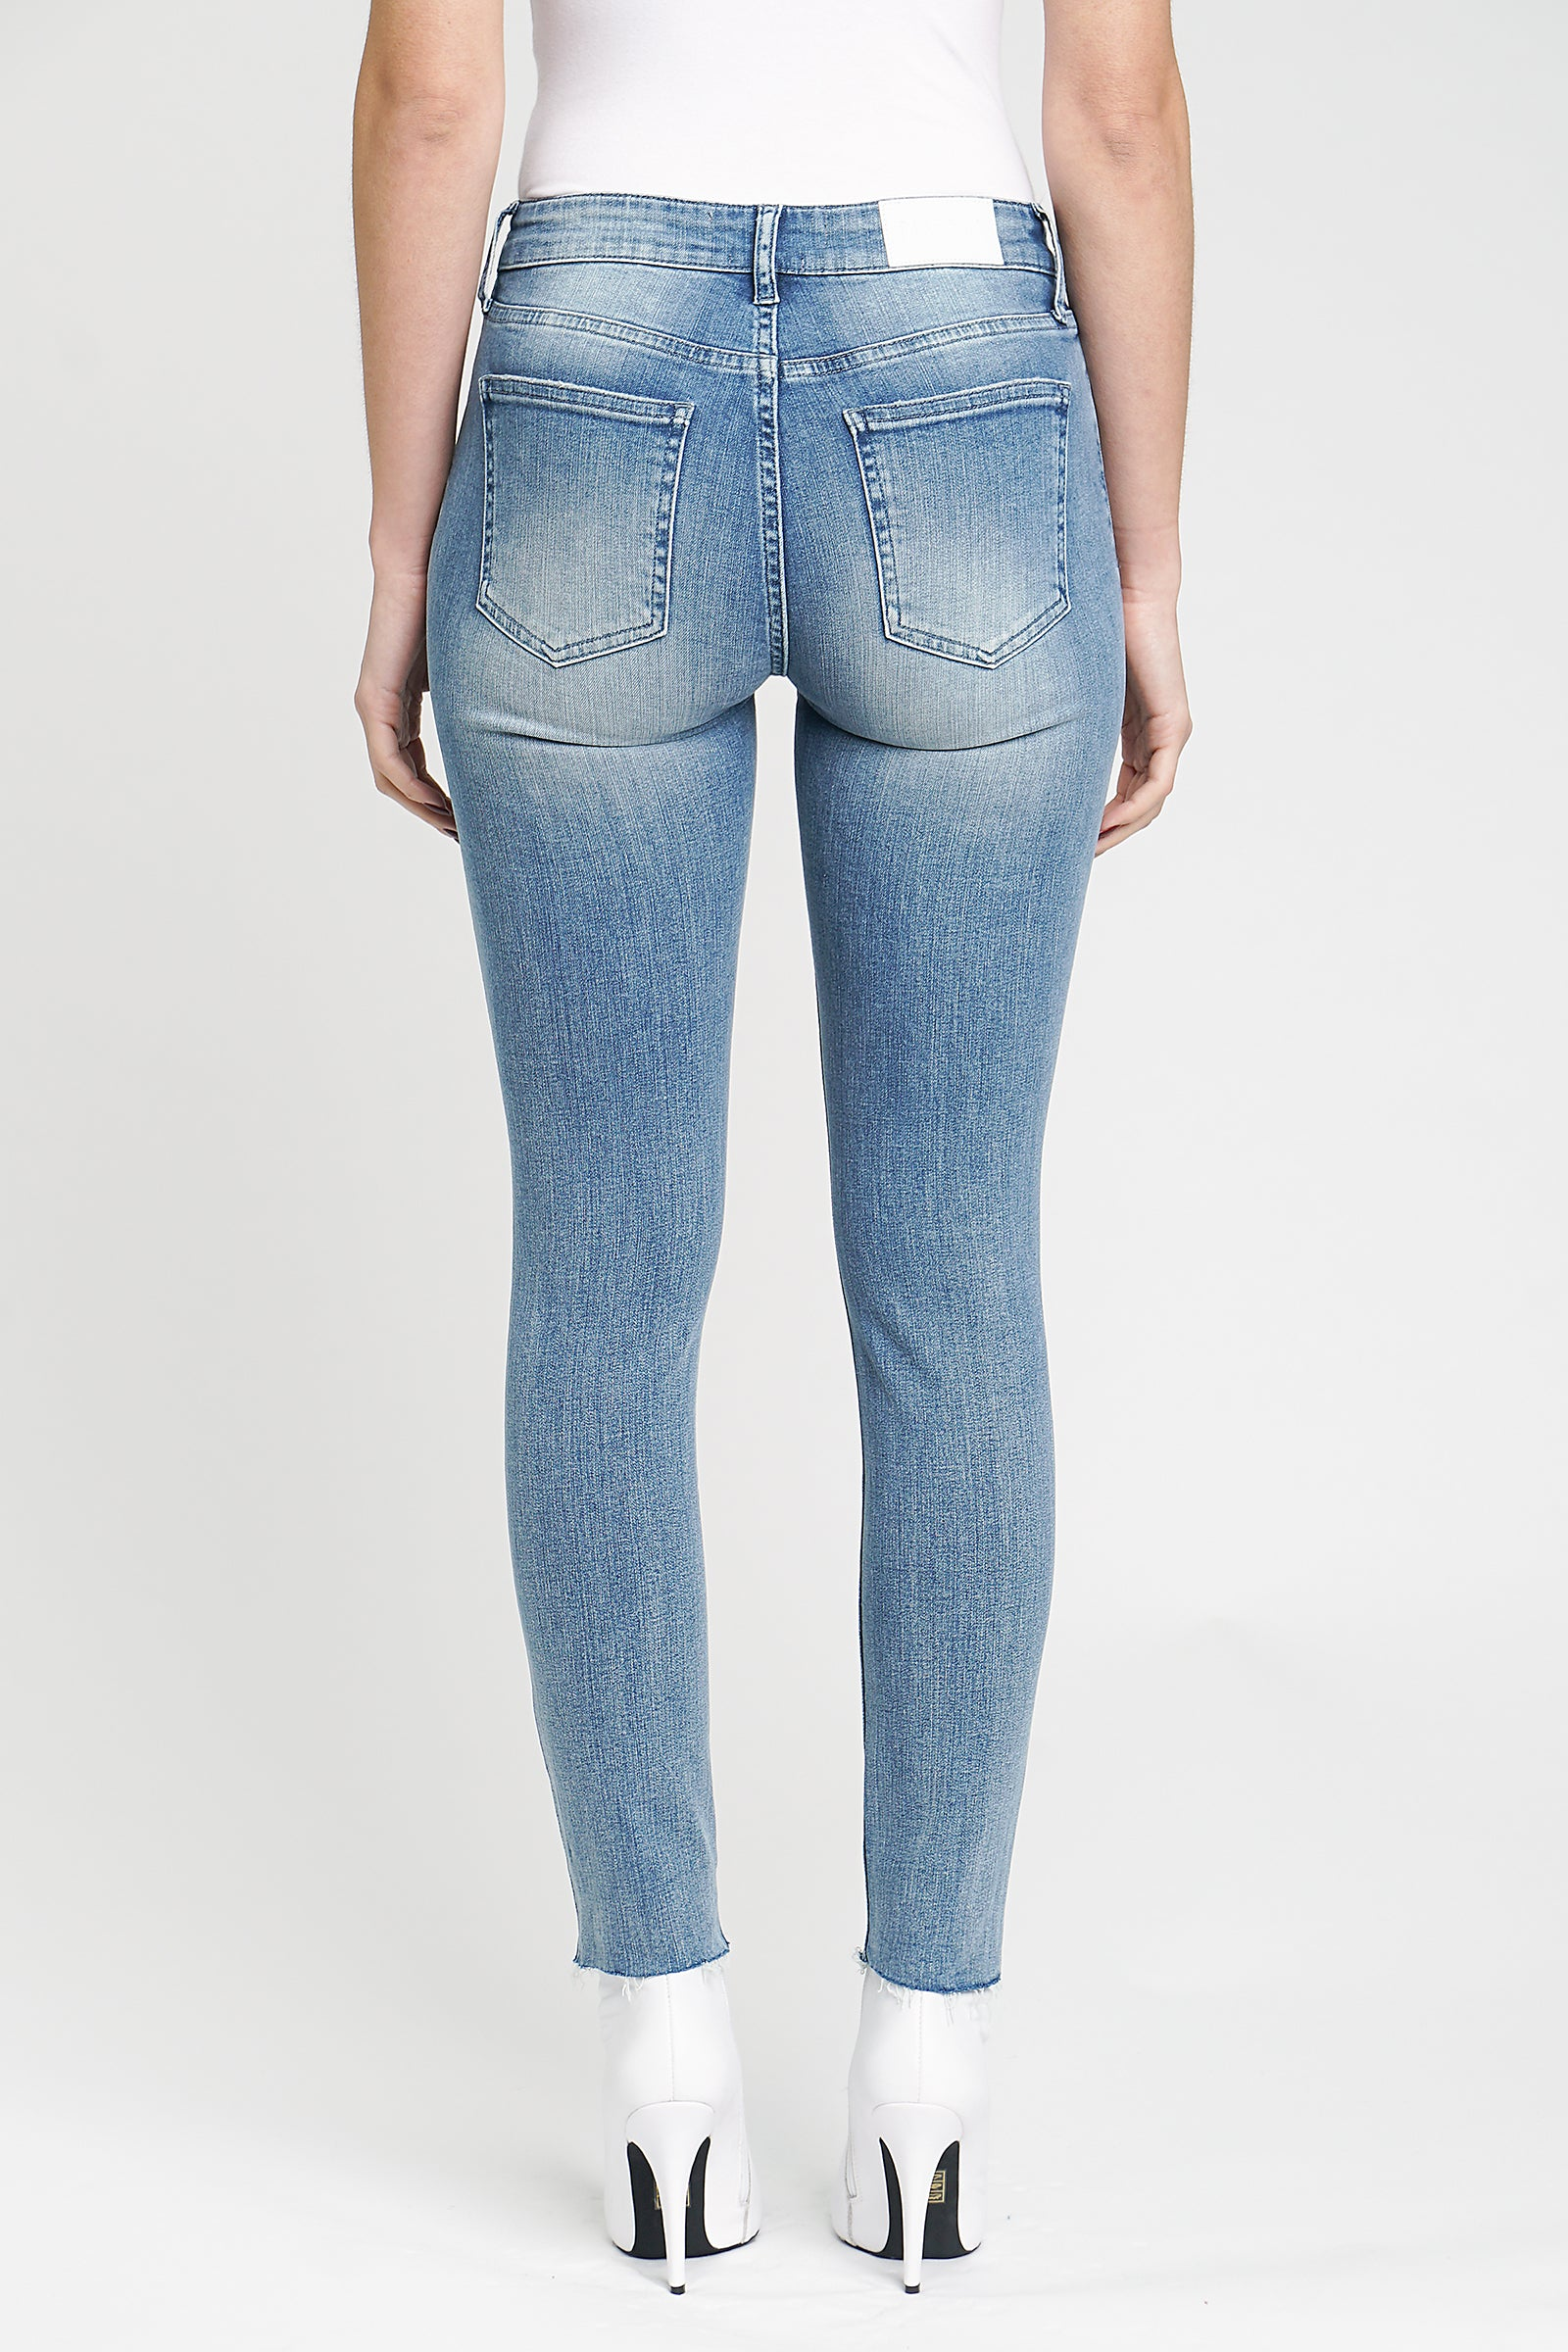 Audrey Mid Rise Skinny - Fate